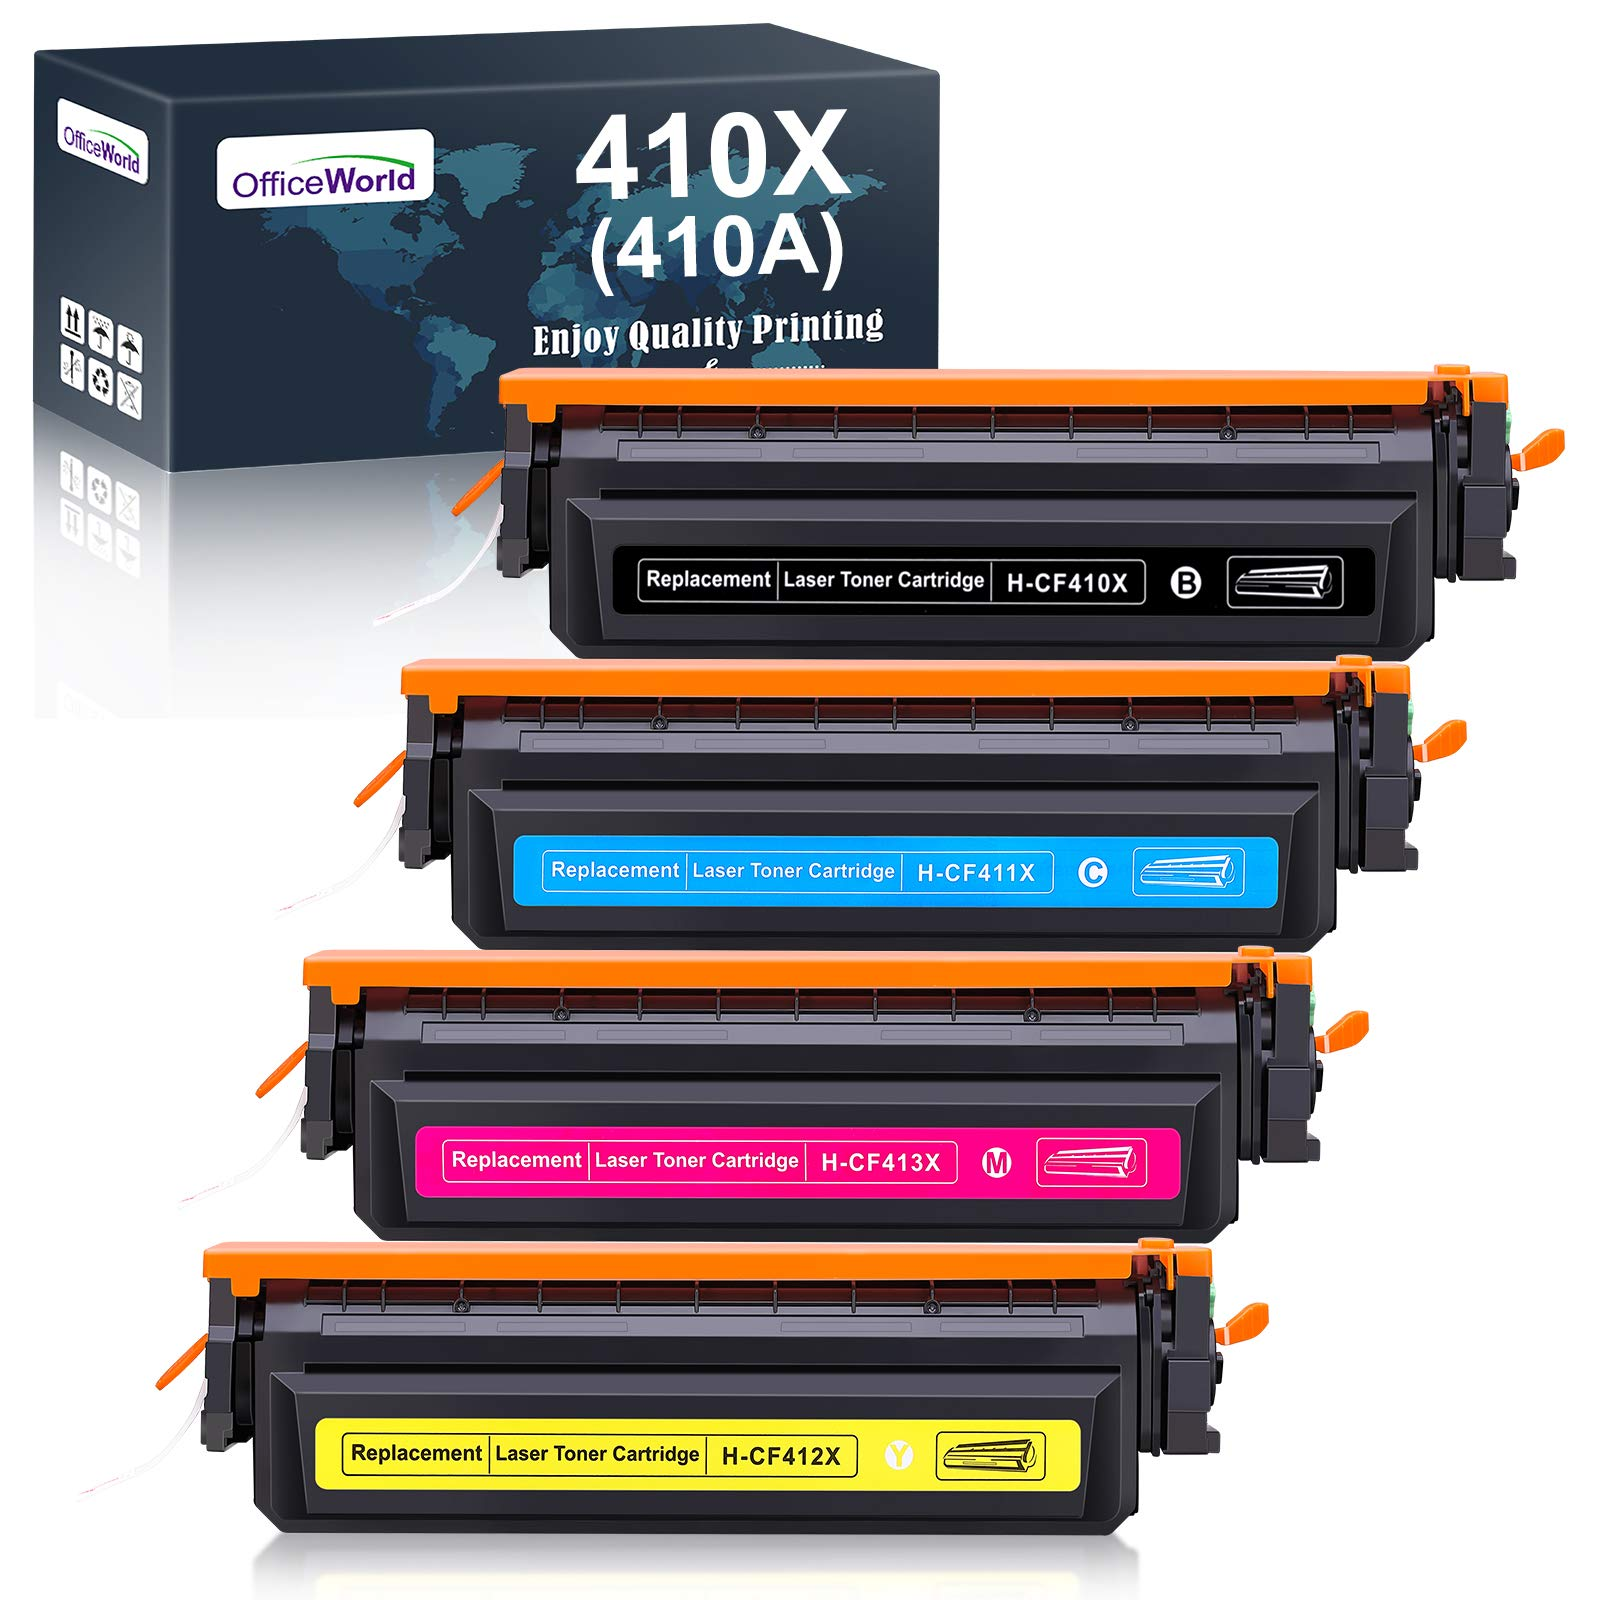 OfficeWorld 410X Toner Replacement for HP 410X 410A CF410X CF410A Toner for Use with HP Color Laserjet Pro MFP-M477fdw M477fdn M477fnw M452dn M452nw M452dw M377dw M477 M452